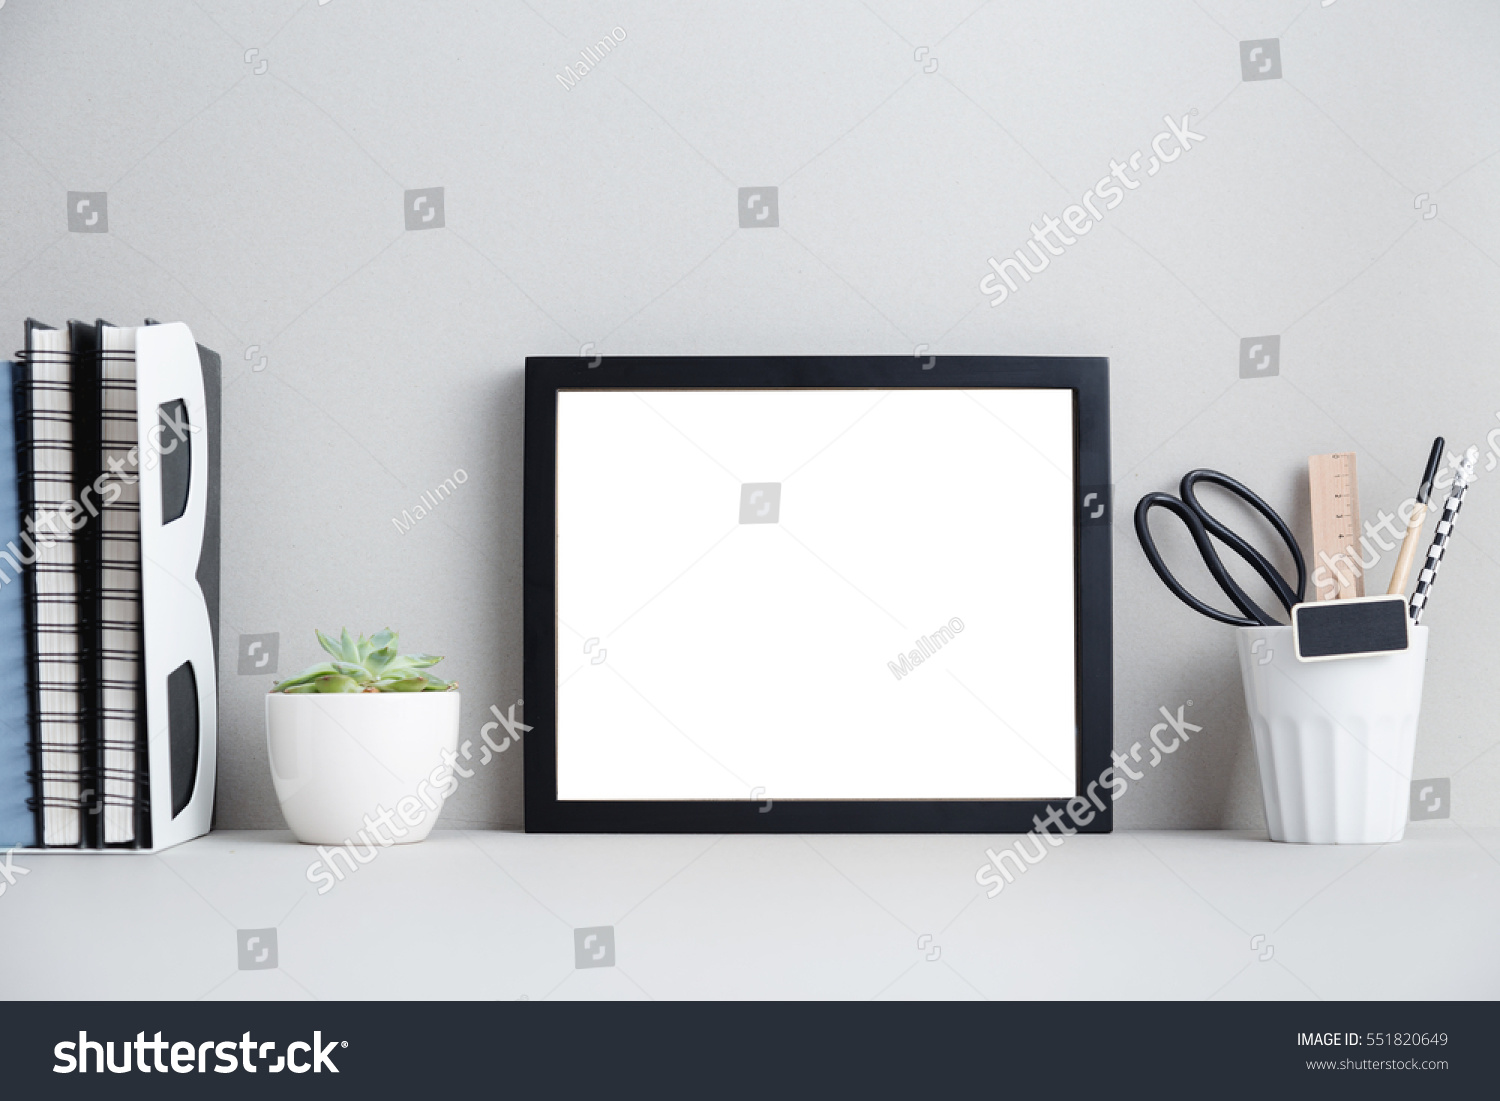 Modern home decor mock up creative stock photo 551820649 for Modern home decor photo gallery